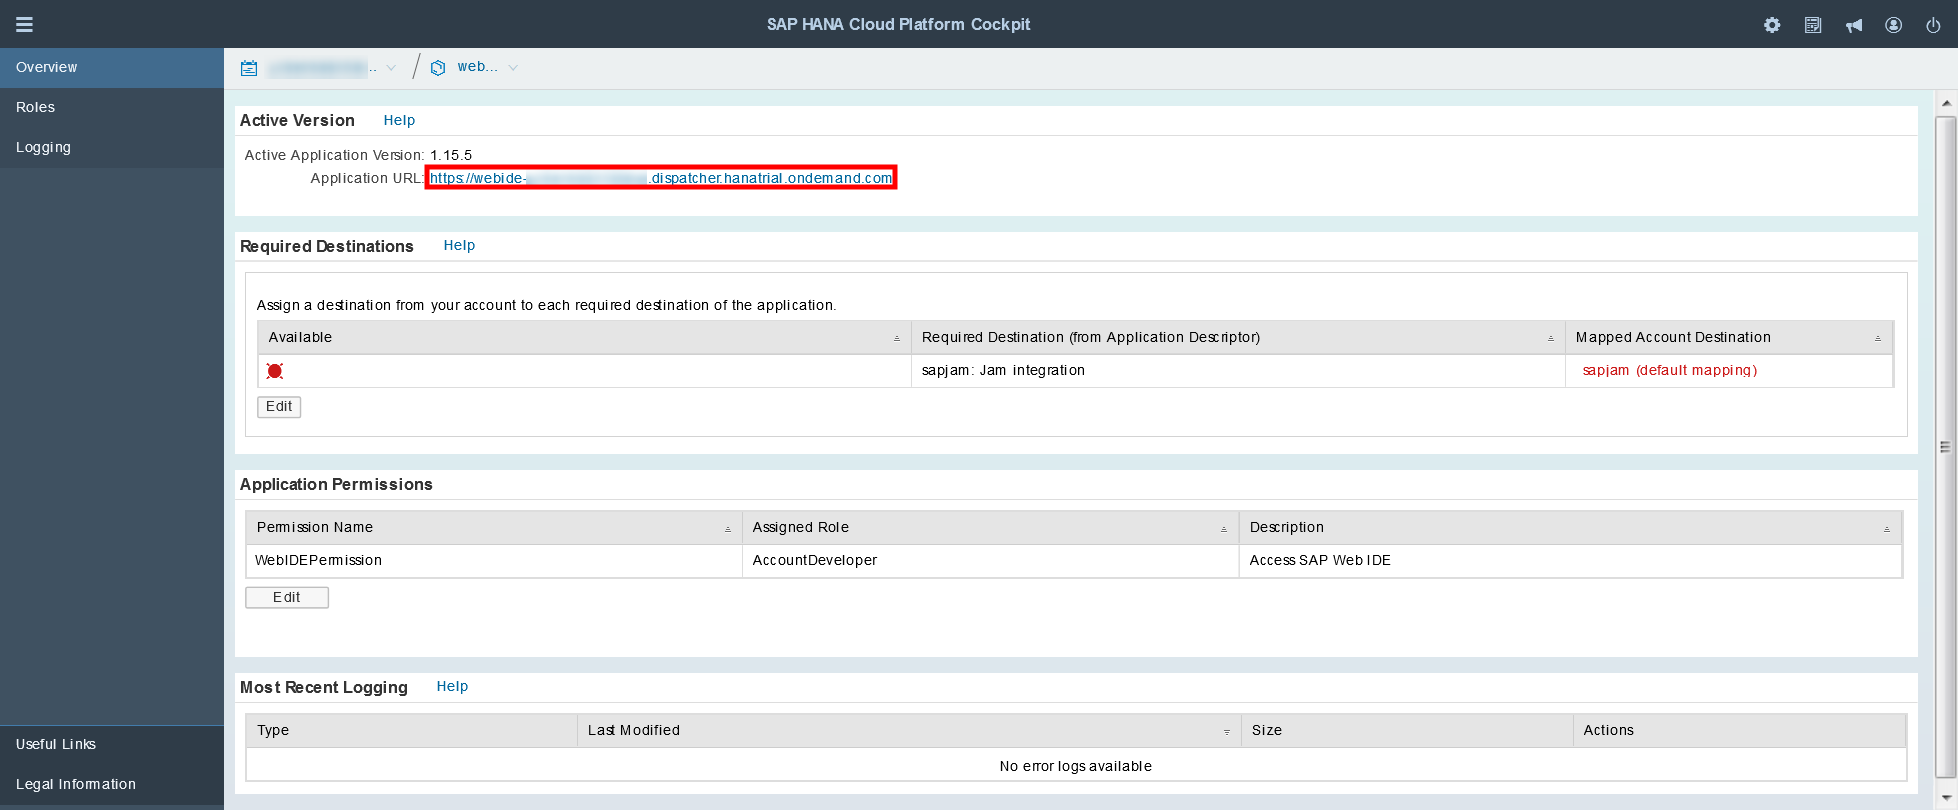 screenshot-account hanatrial ondemand com 2015-10-05 22-06-29.SAP HANA COCKPIT02.png